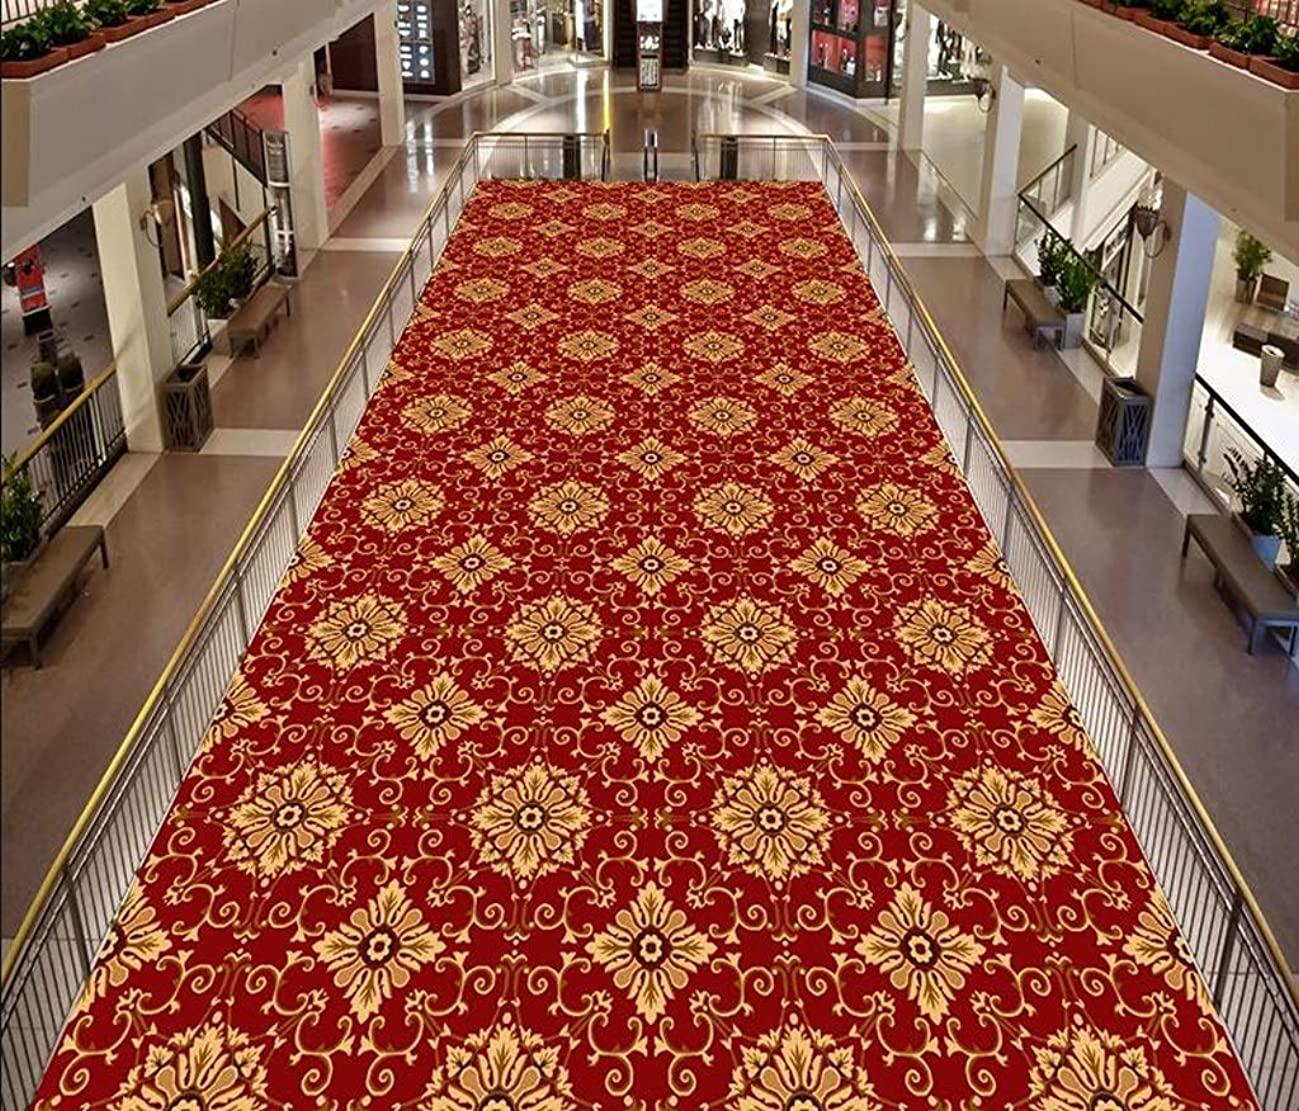 Mbd Corridor Carpet Non-Slip Absorbent 3D Running Carpet, Stair Kitchen and Entrance Soft, Absorbent Custom (Color : D, Size : 0.88m)